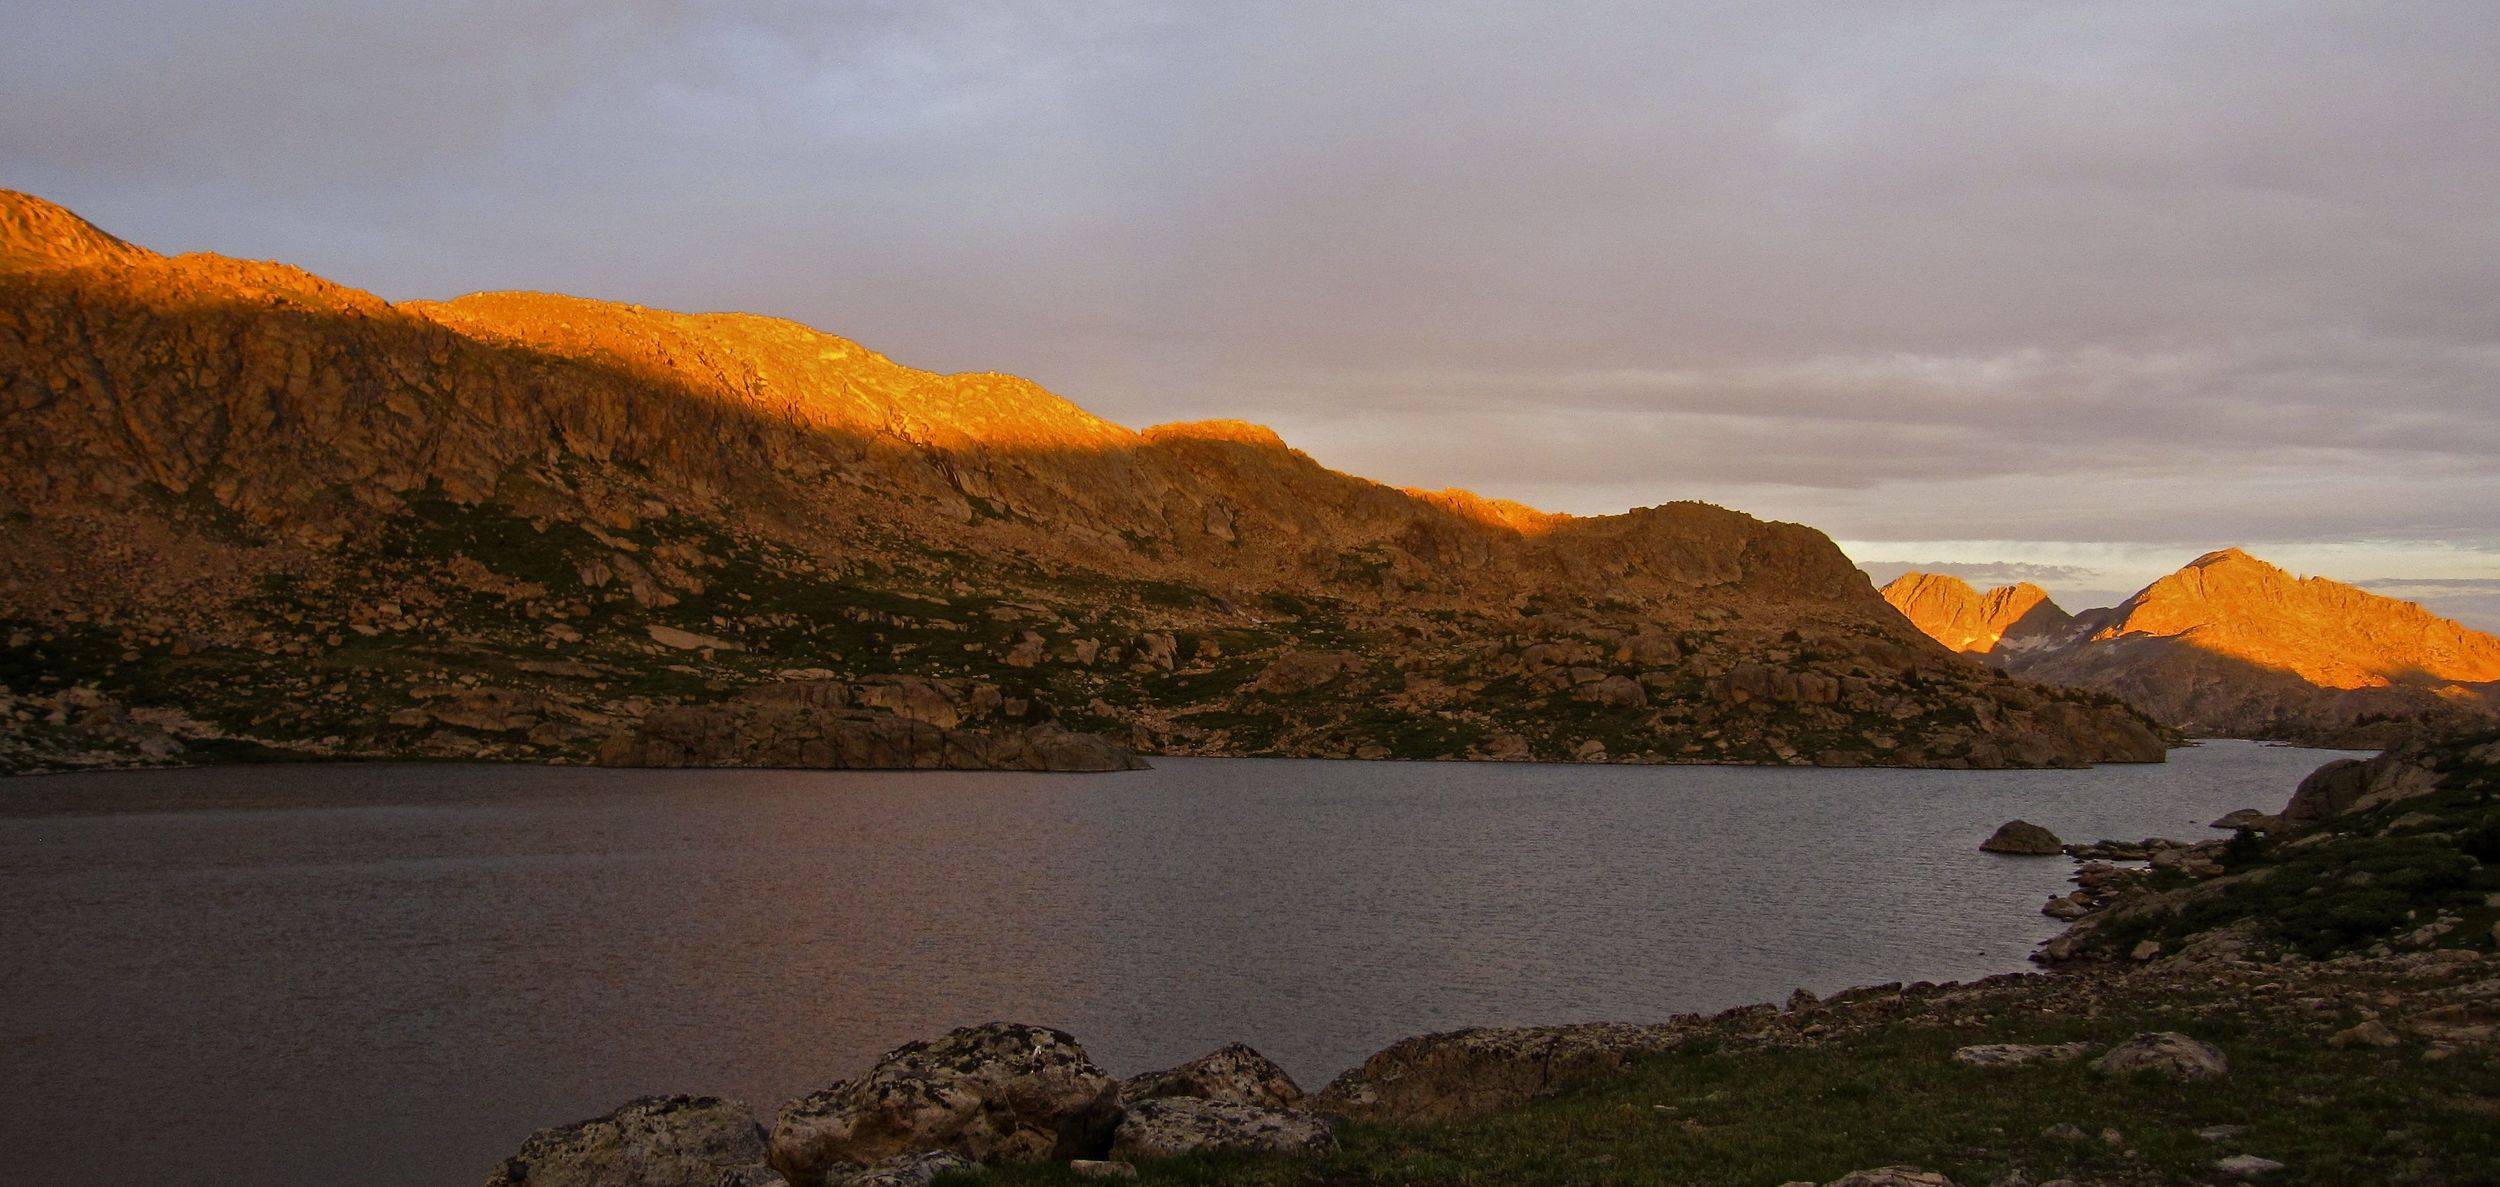 Sunset in the Wind River range.